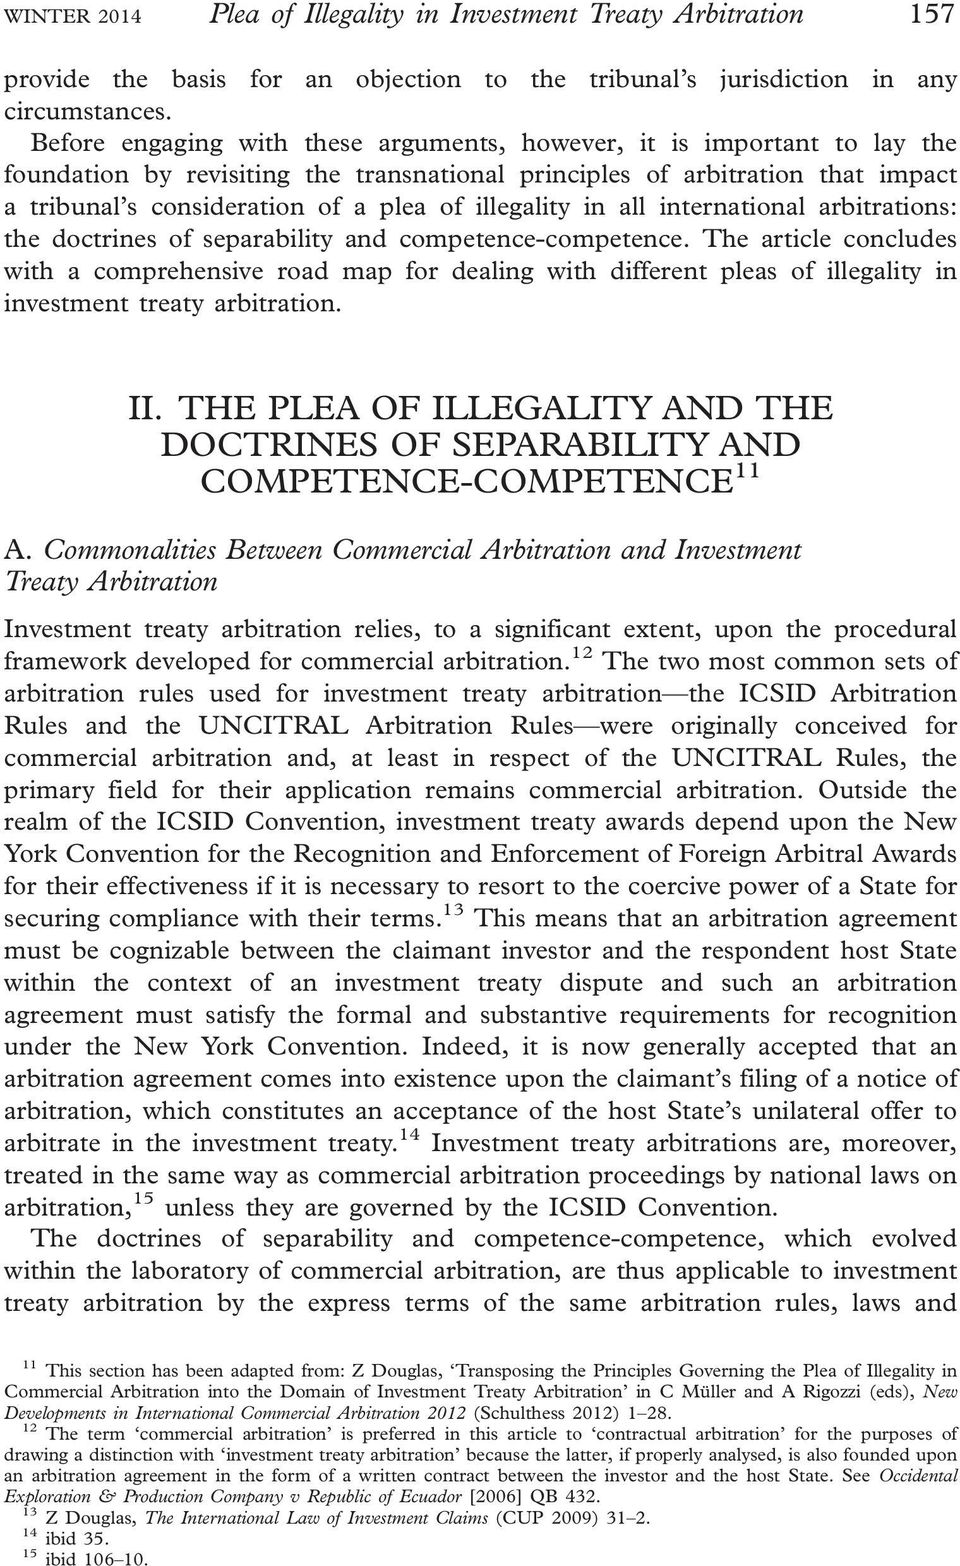 illegality in all international arbitrations: the doctrines of separability and competence-competence.